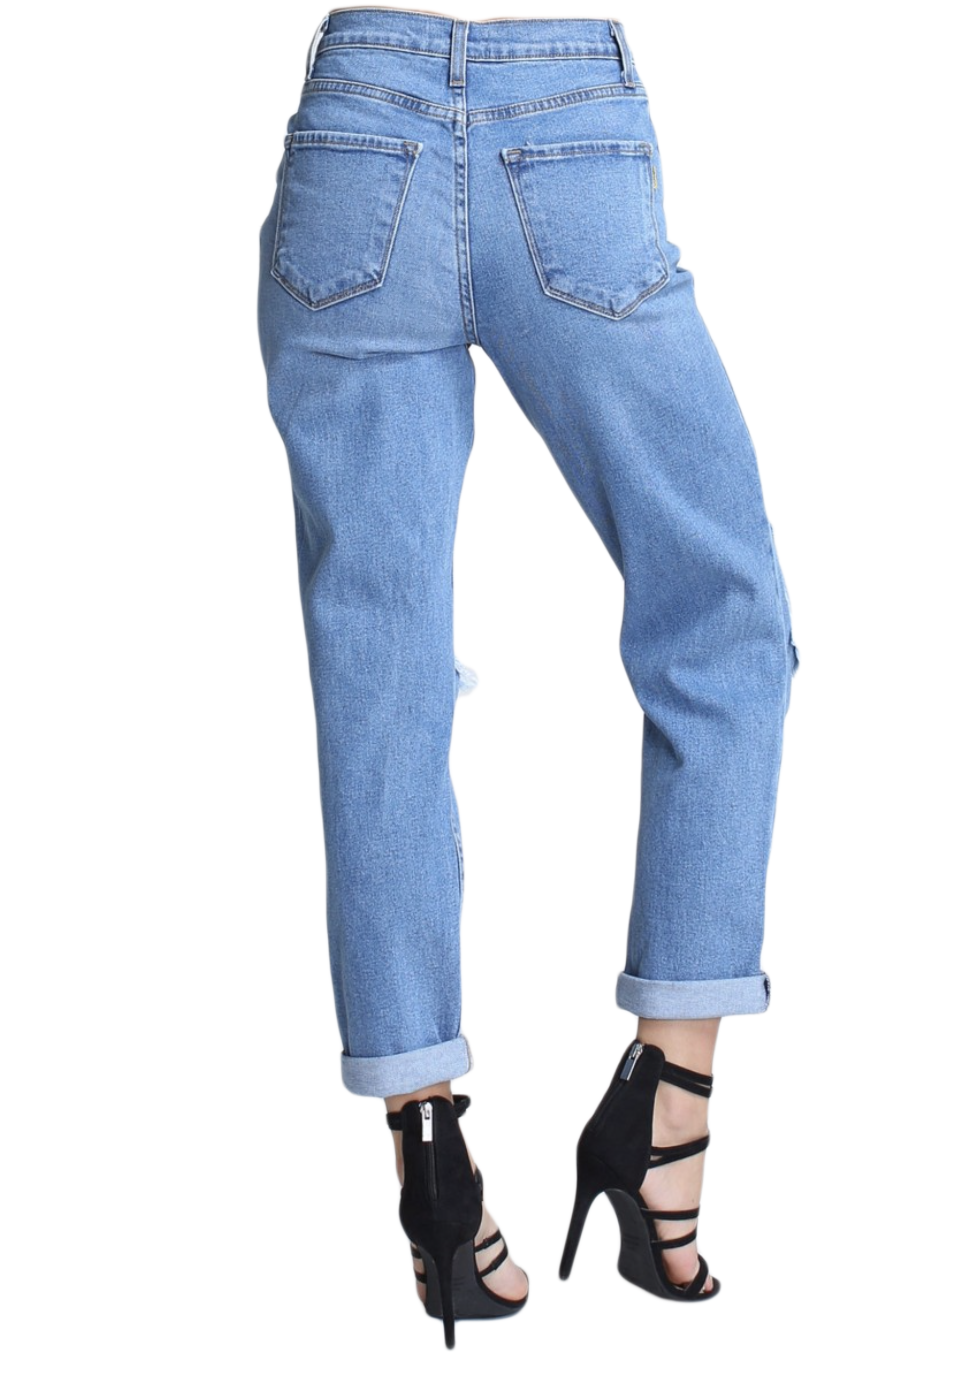 {P1378} Blue Denim Distressed Mom Jeans {2 Color Available} - The House of Stylez